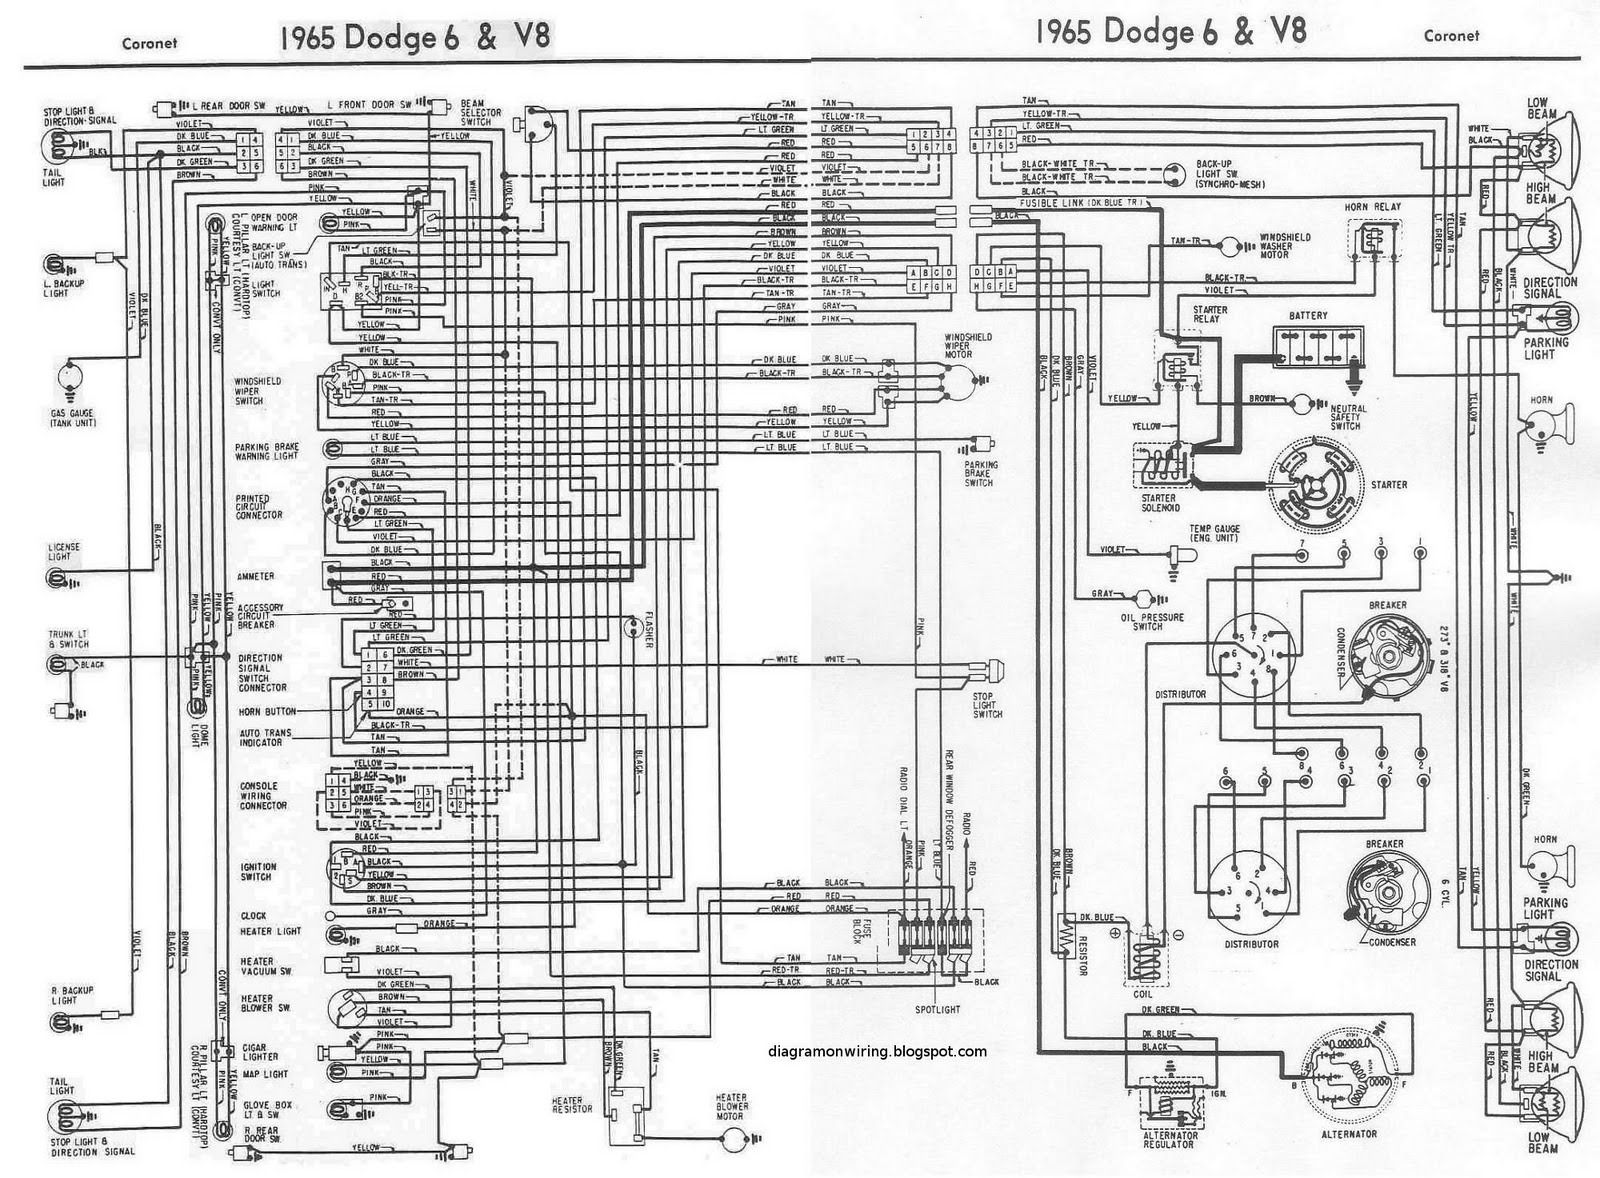 wirings of 1964 plymouth 6 and v8 valiant part 1 diagram data schema diagram 1964 plymouth 6 and v8 valiant part 1 wiring 1964 plymouth [ 1600 x 1178 Pixel ]